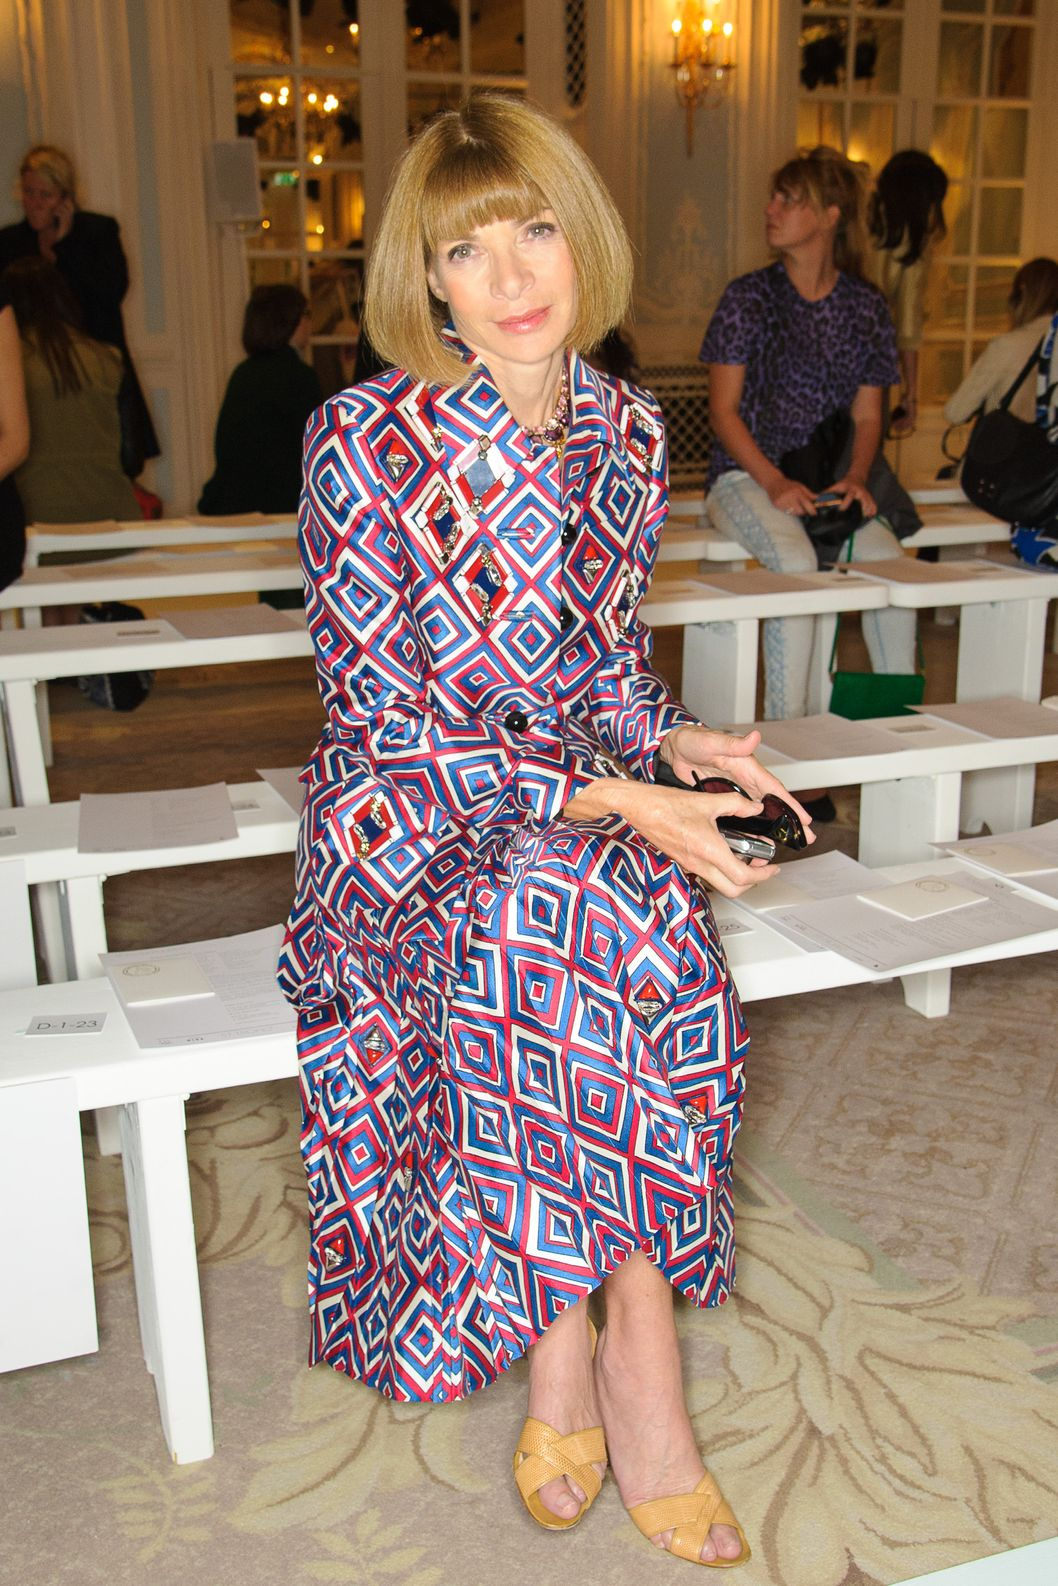 Anna Wintour attends the front row for the Roksanda Ilincic show on day 5 of London Fashion Week Spring/Summer 2013, at the Savoy Ballroom on September 18, 2012 in London, England.